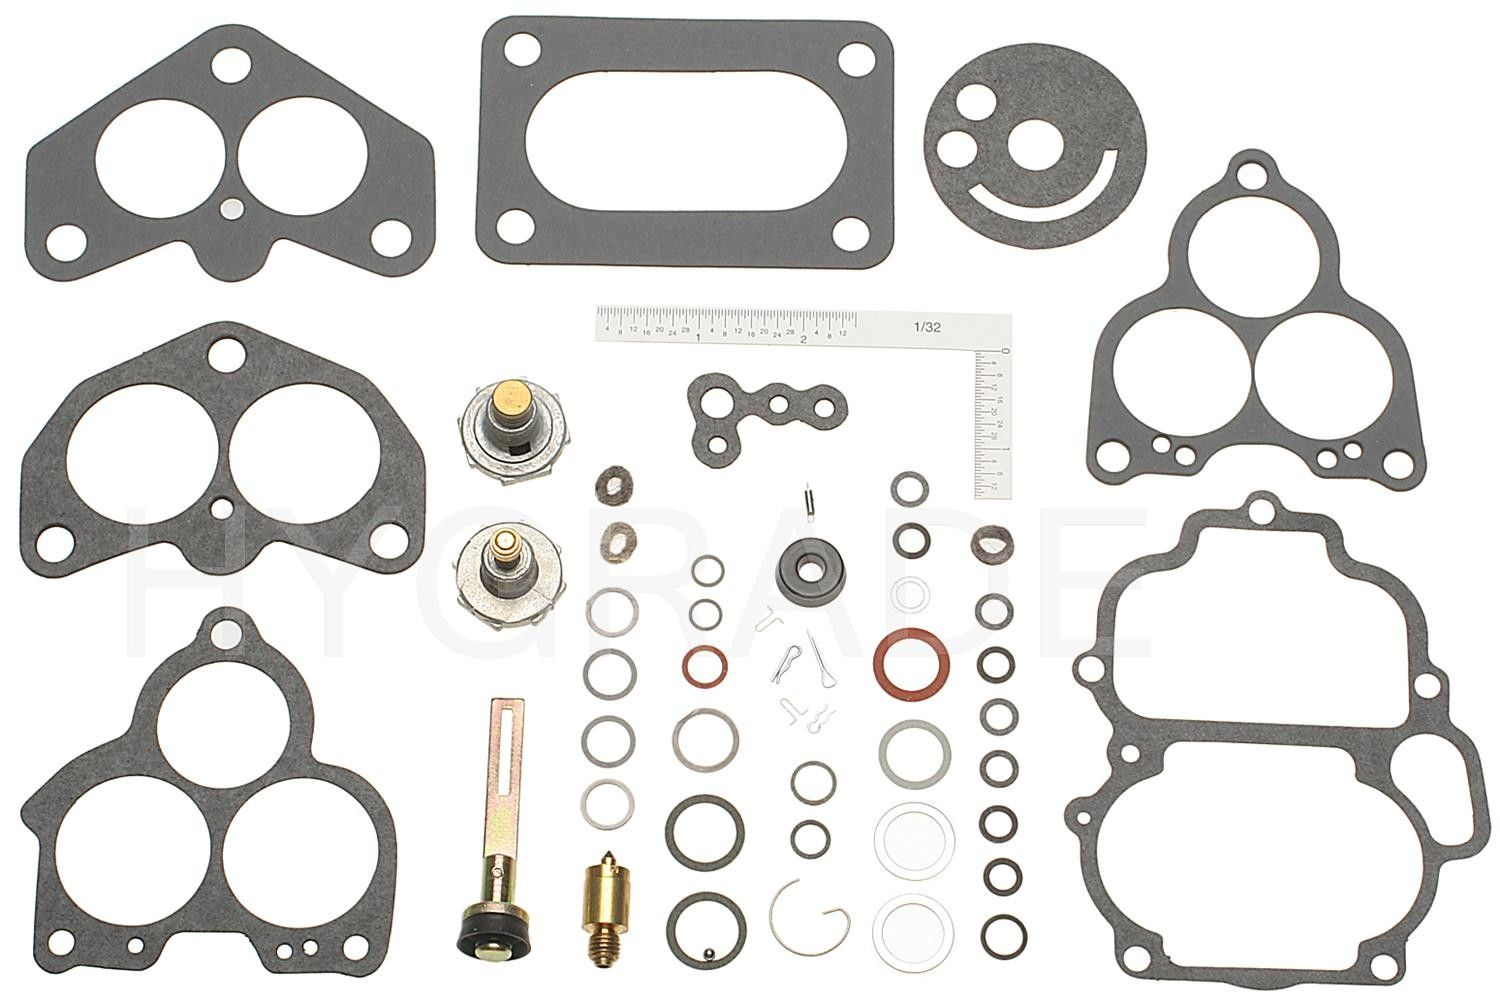 Ford F 250 Carburetor Repair Kit Replacement Hygrade Walker Go Wiring Harness Kits 1956 8 Cyl 44l 1434 With Holley Carb 2100 2110 B6c C D B6y A B7c B Ecw E H J K L M R1157